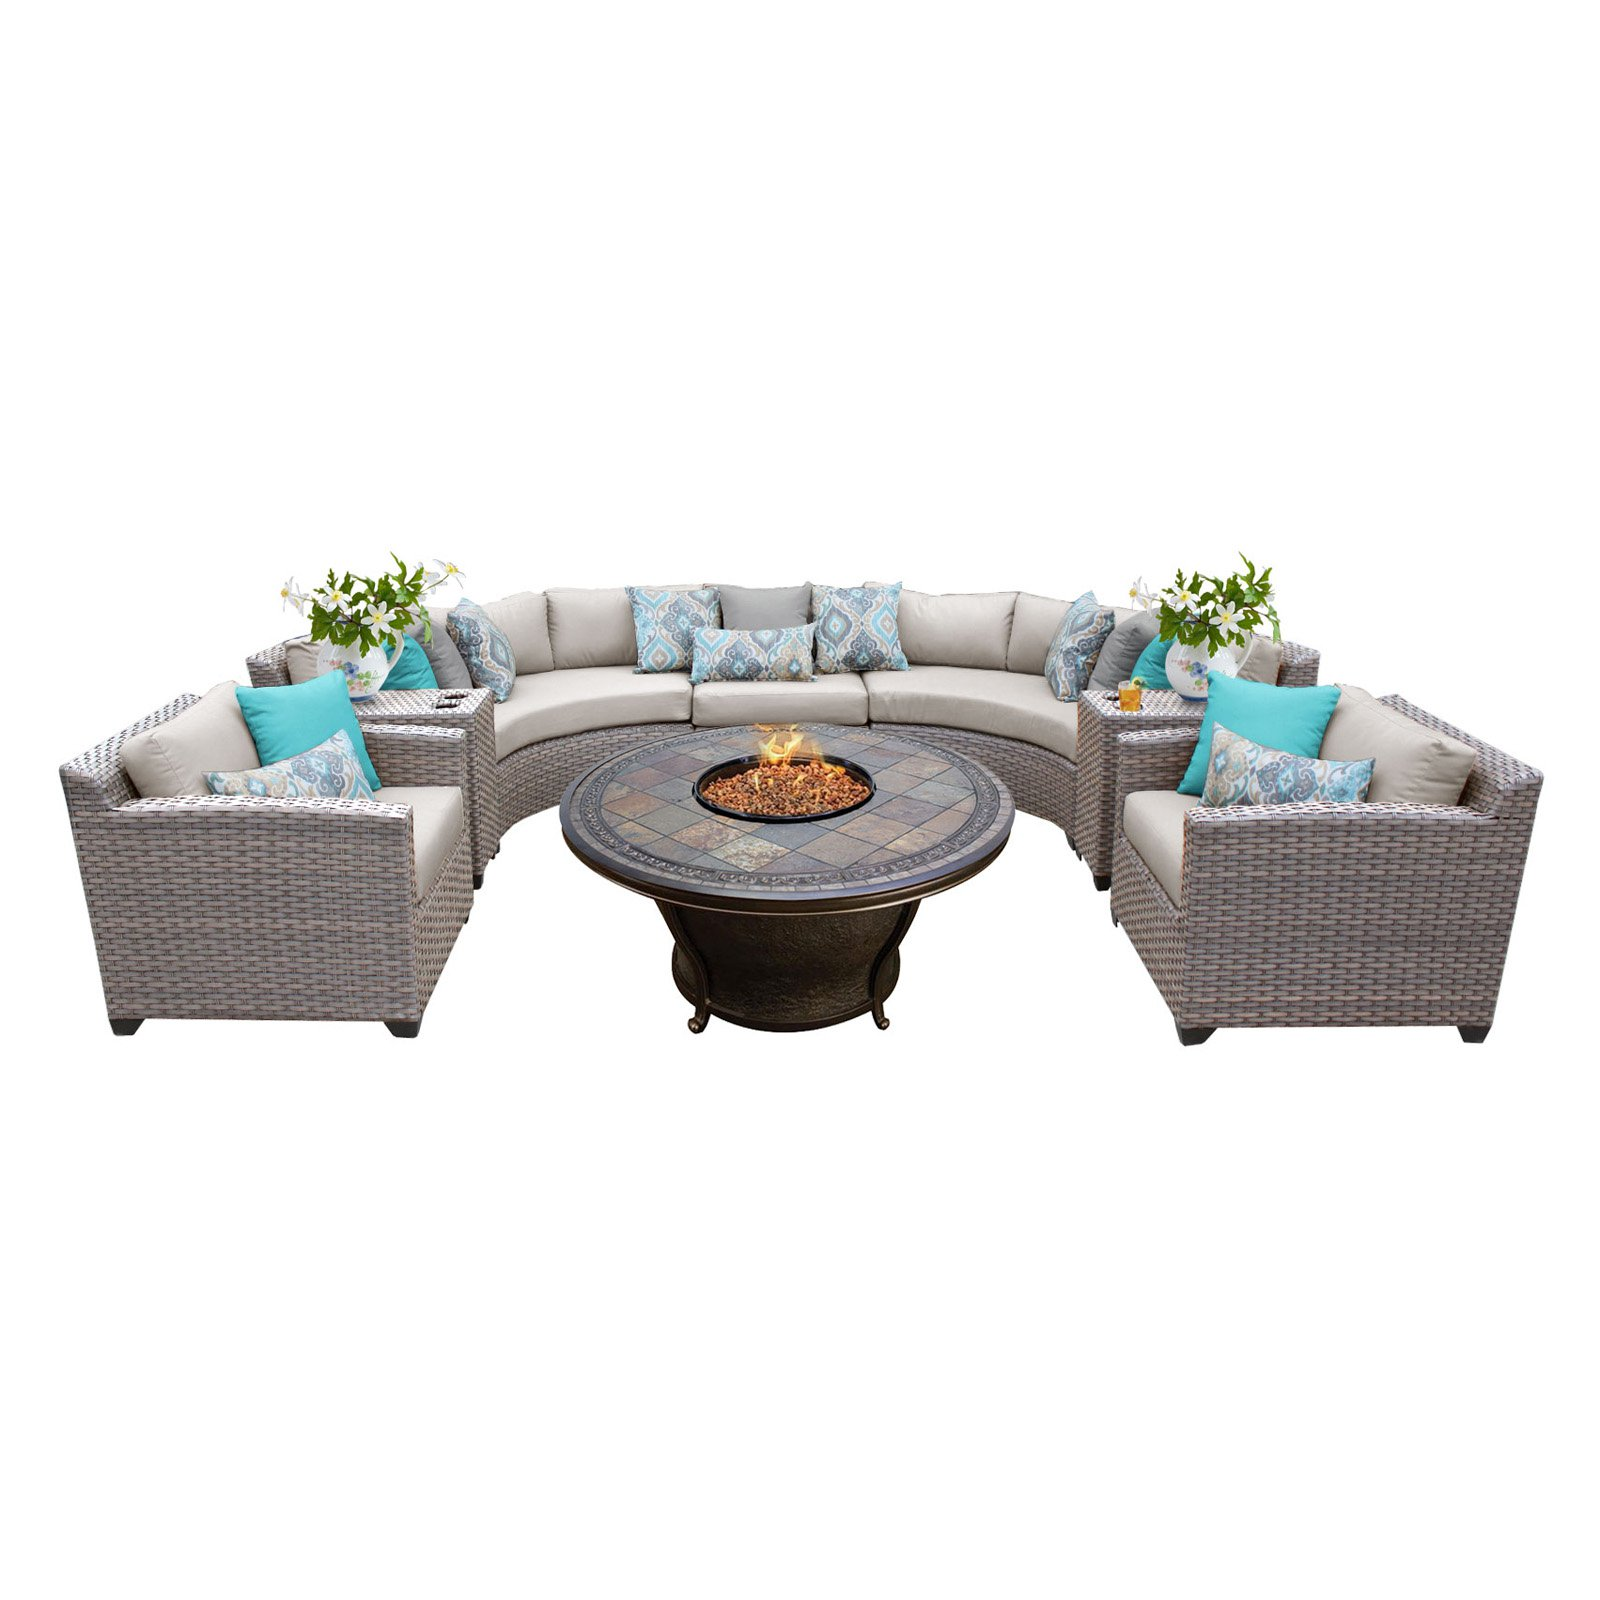 TK Classics Florence Wicker Sectional Set with Tempe Fire Pit Table